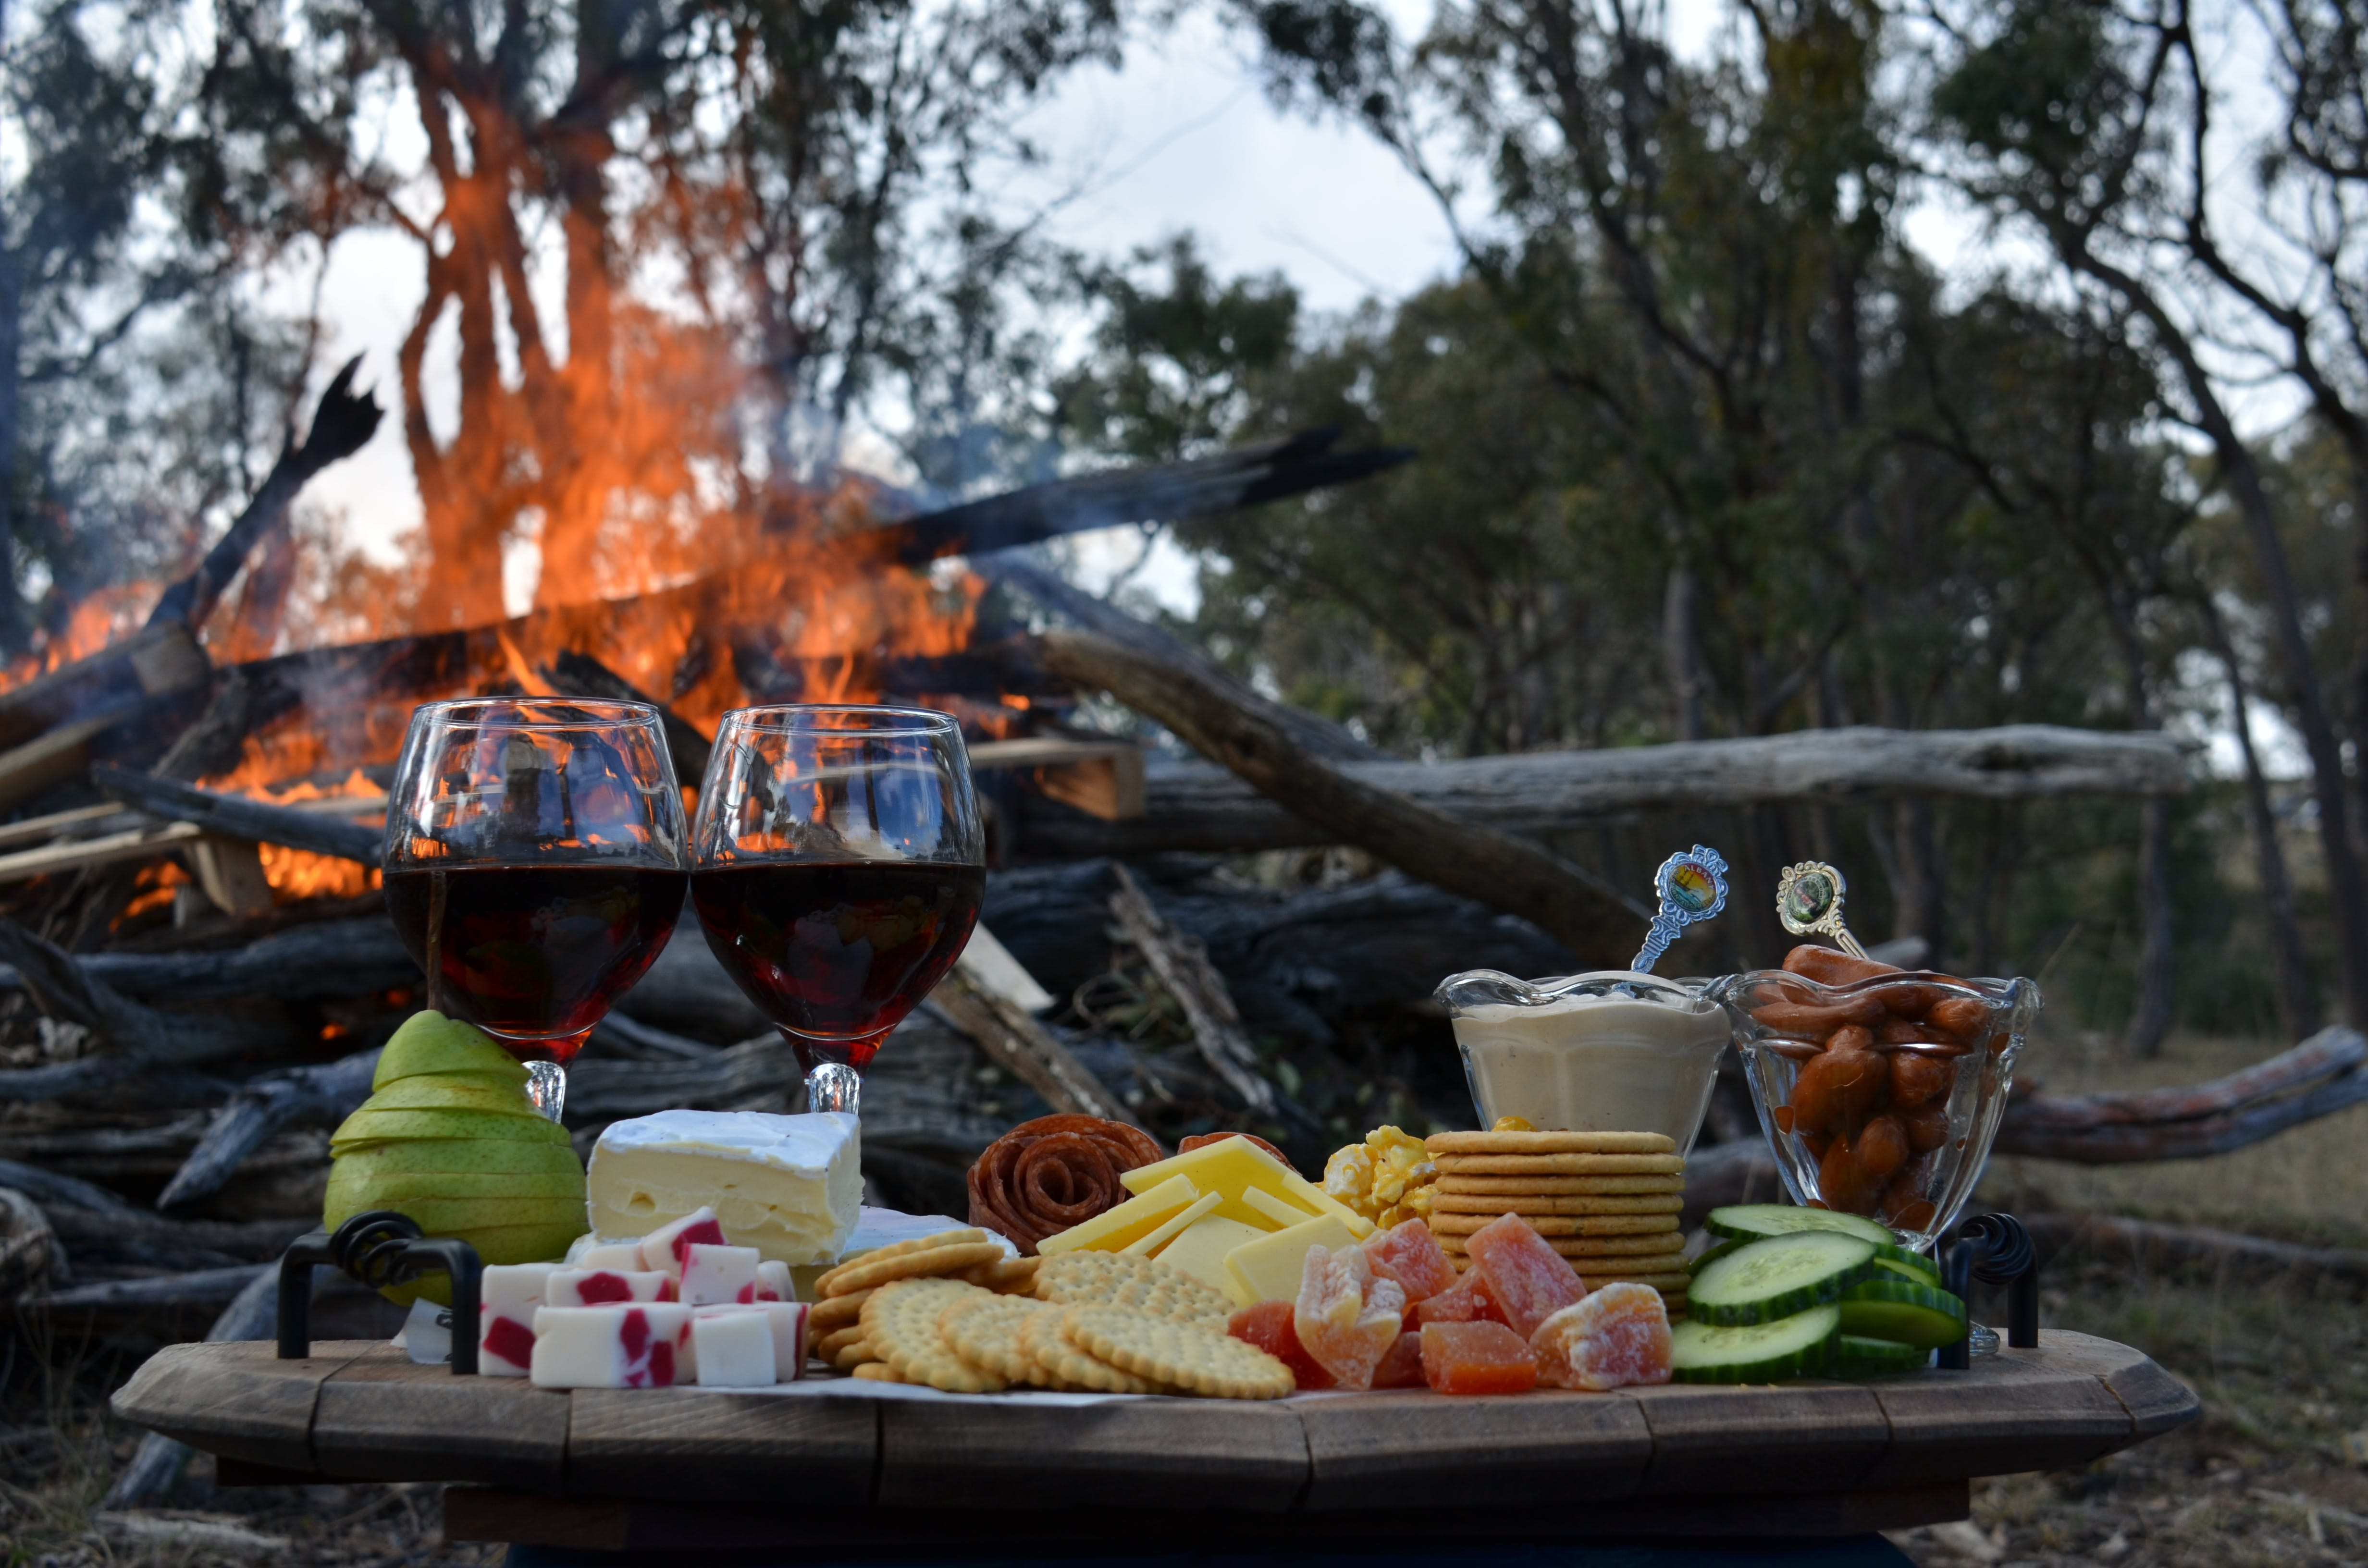 Free stock photo of winter day beside fire with wine and cheese